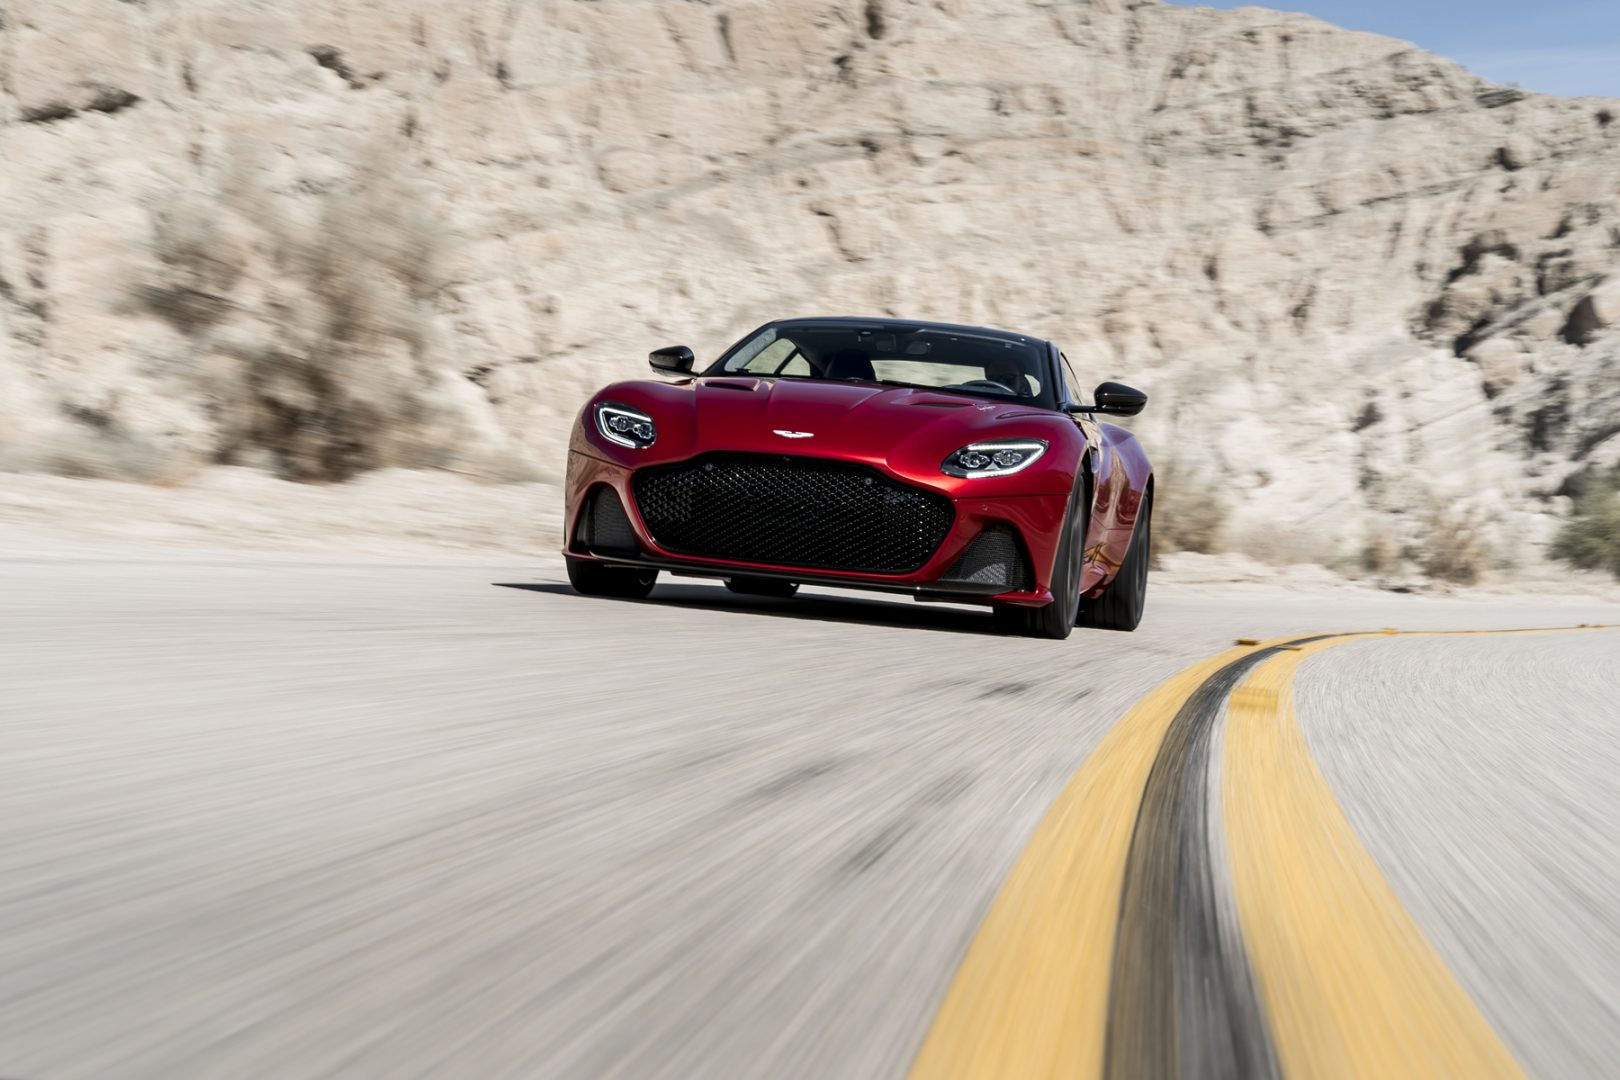 DBS_Superleggera (1)WM